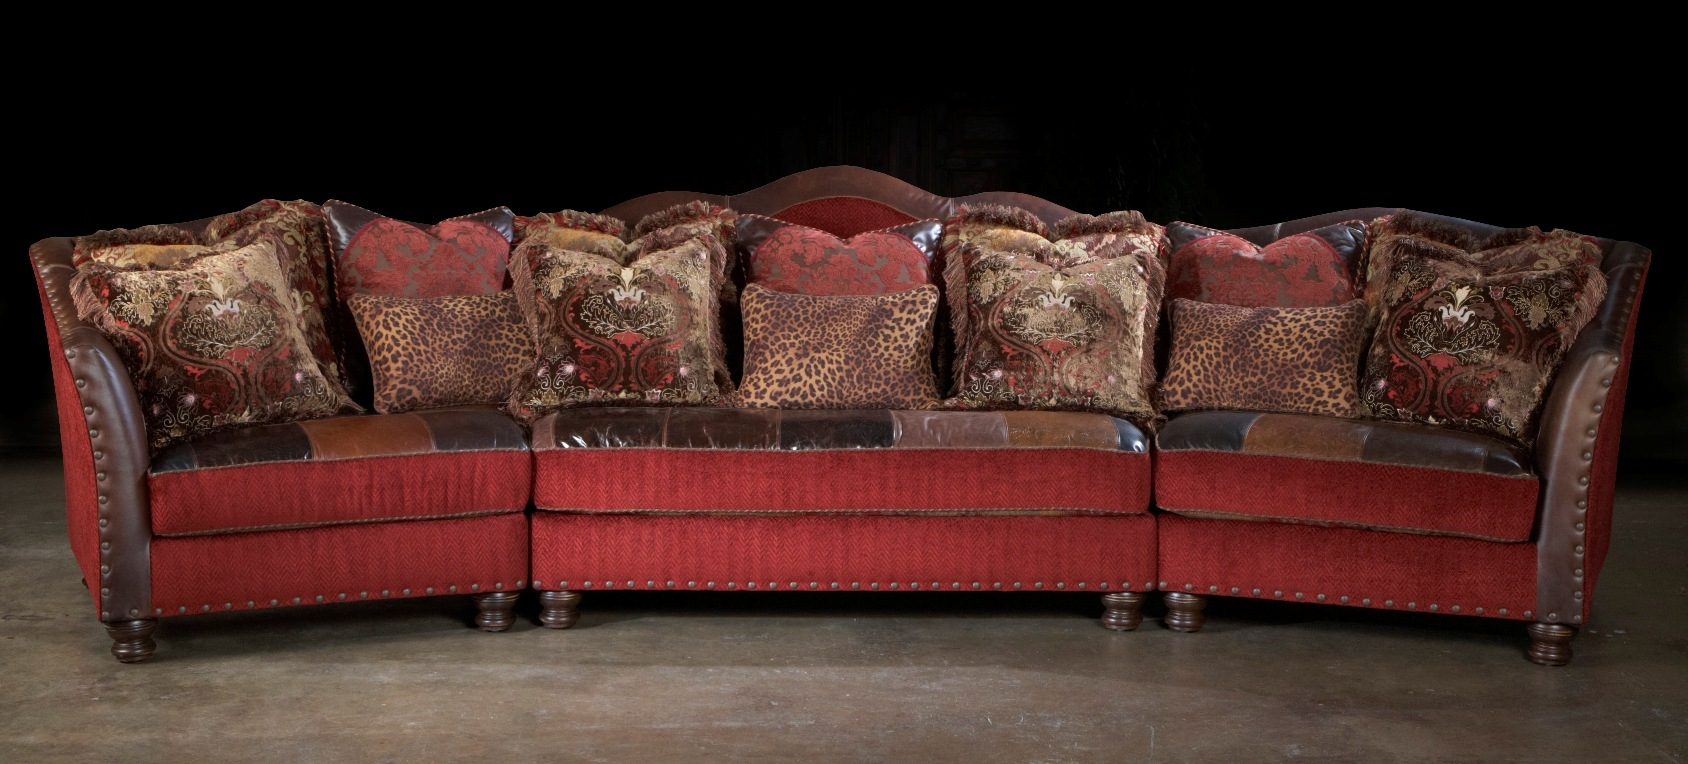 Red Sectional Sofa Couch Leather Patchwork